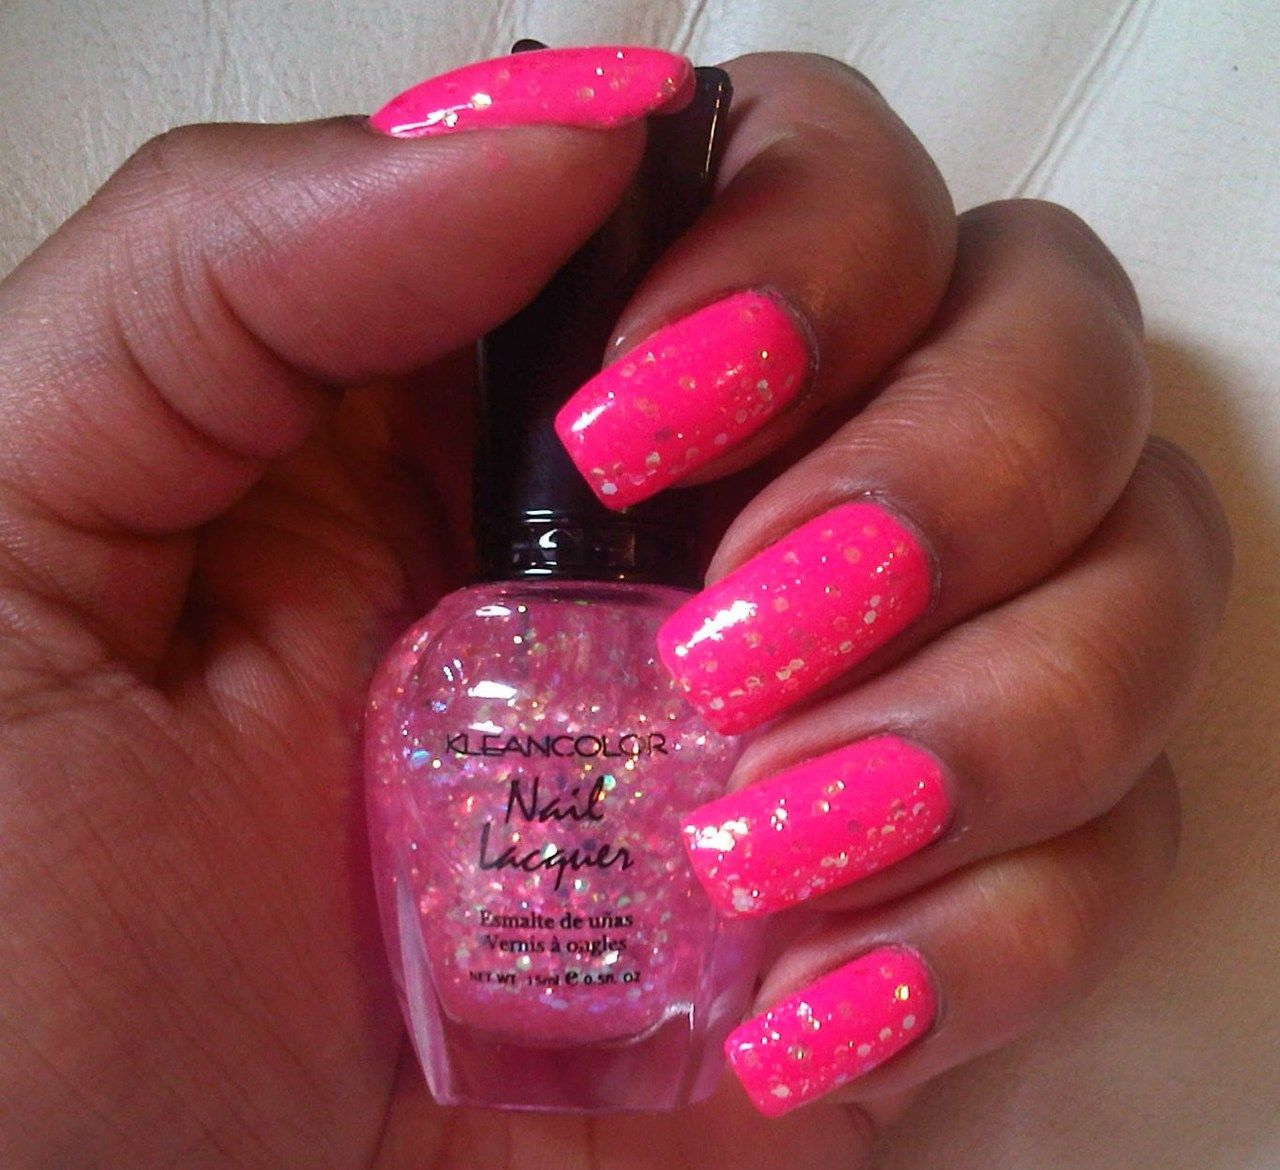 Mix Signal over Neon Pink | Kleancolor Nail Lacquer | Pinterest ...